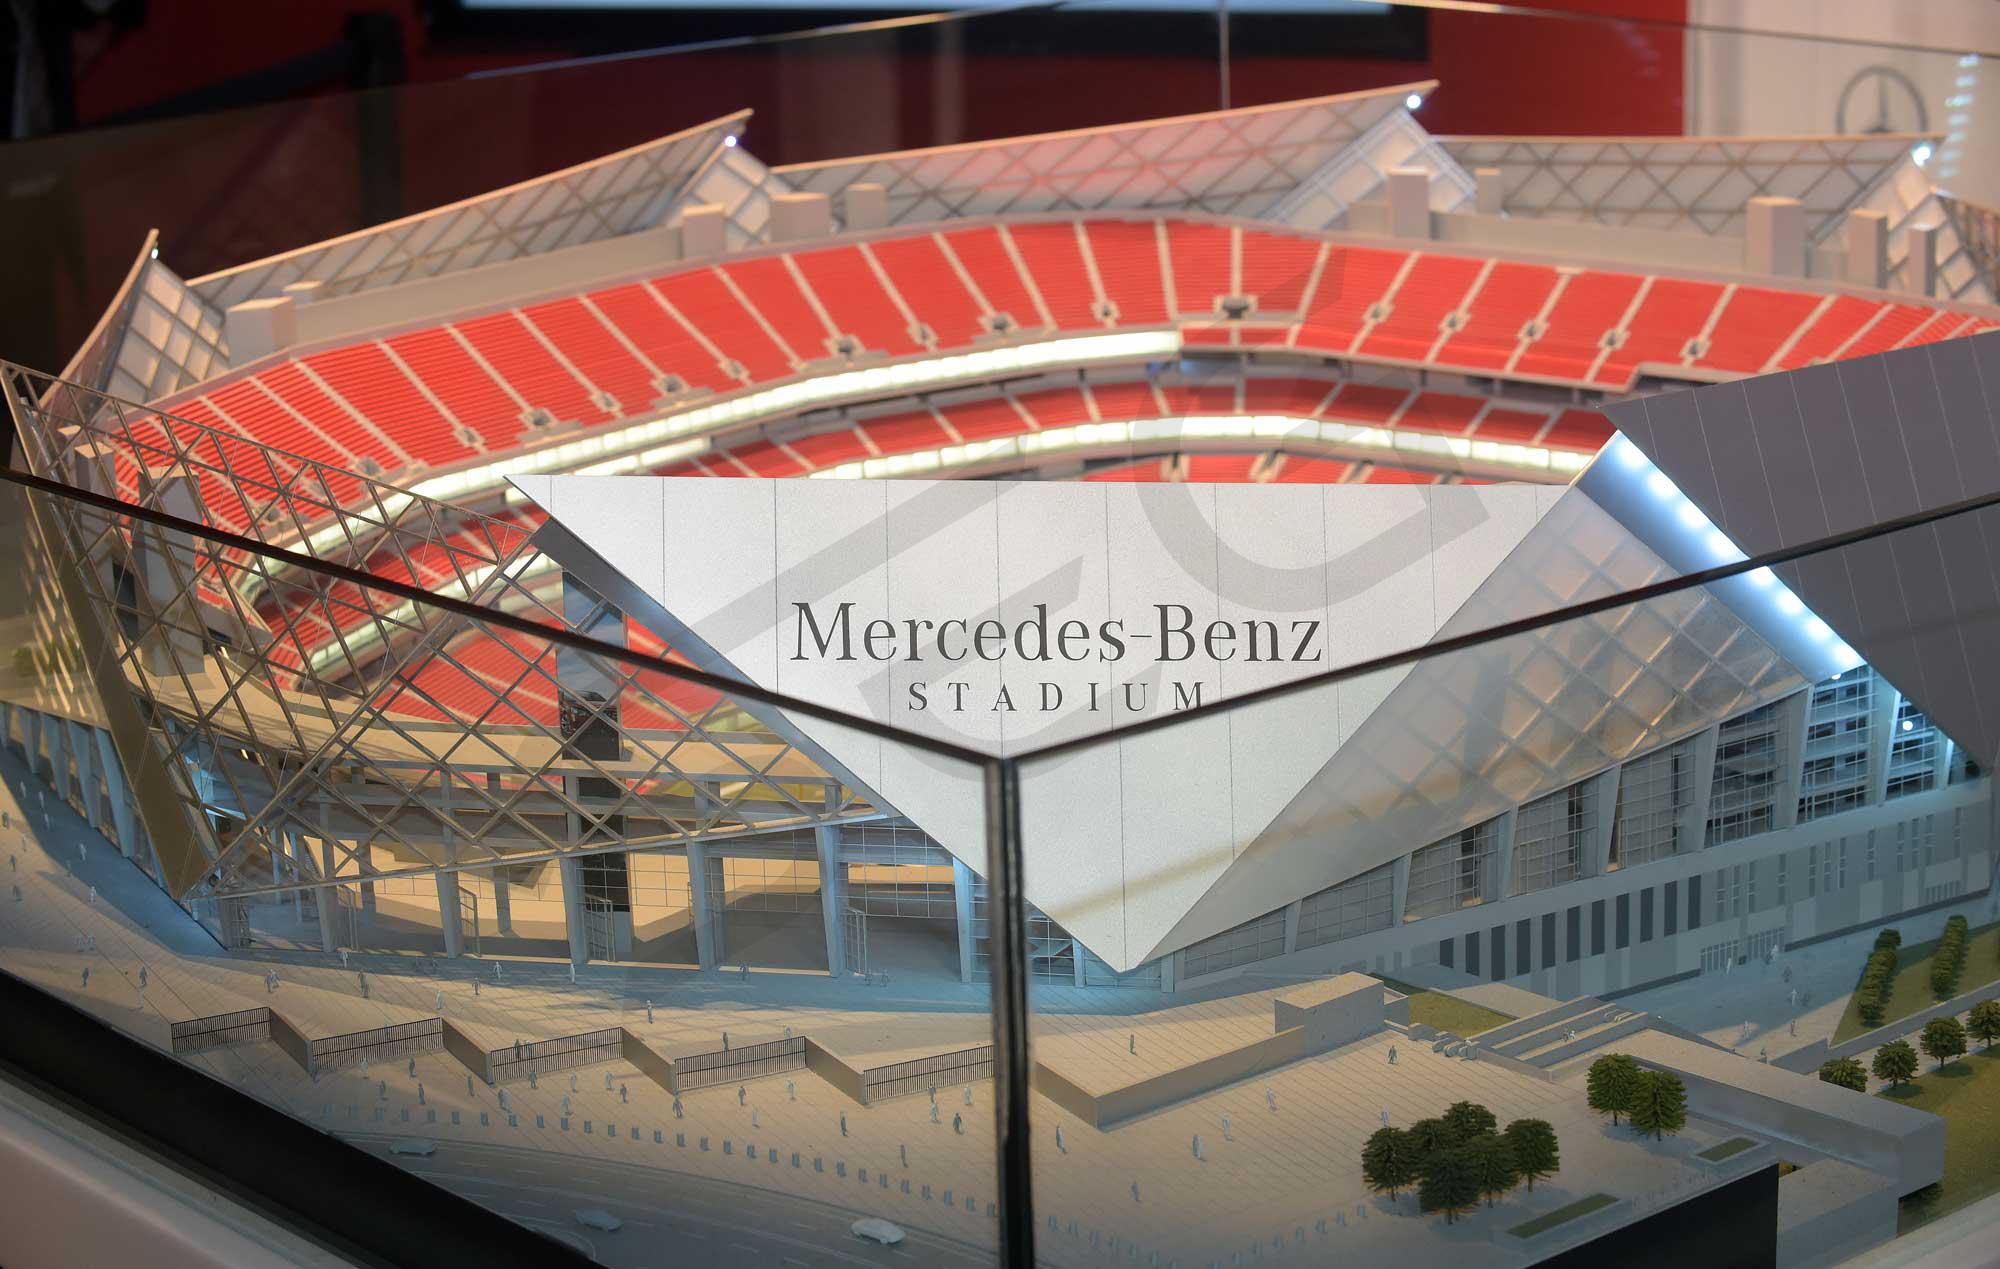 Mercedes benz stadium suites for rent suite experience group for Will call mercedes benz stadium